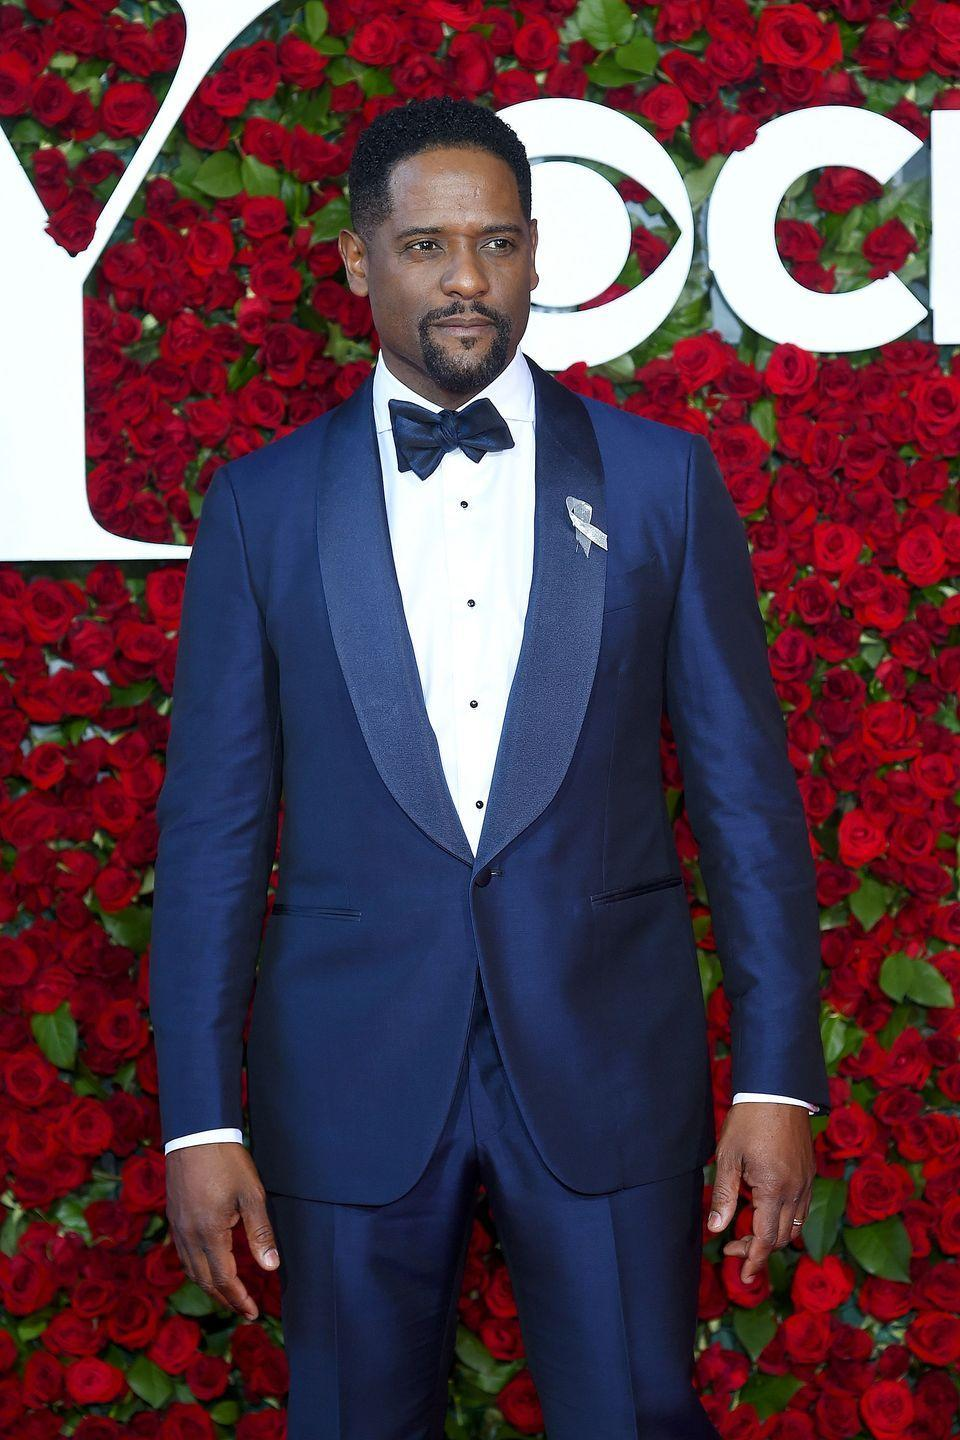 <p>Seemingly immune to aging, Blair is just as good-looking as ever — and rocks some fantastic suits. His career is still strong as well, as he was a part of ABC's hit show <em>Quantico</em> as Owen Hall and Ava DuVernay's Netflix miniseries <em>When They See Us.</em></p>